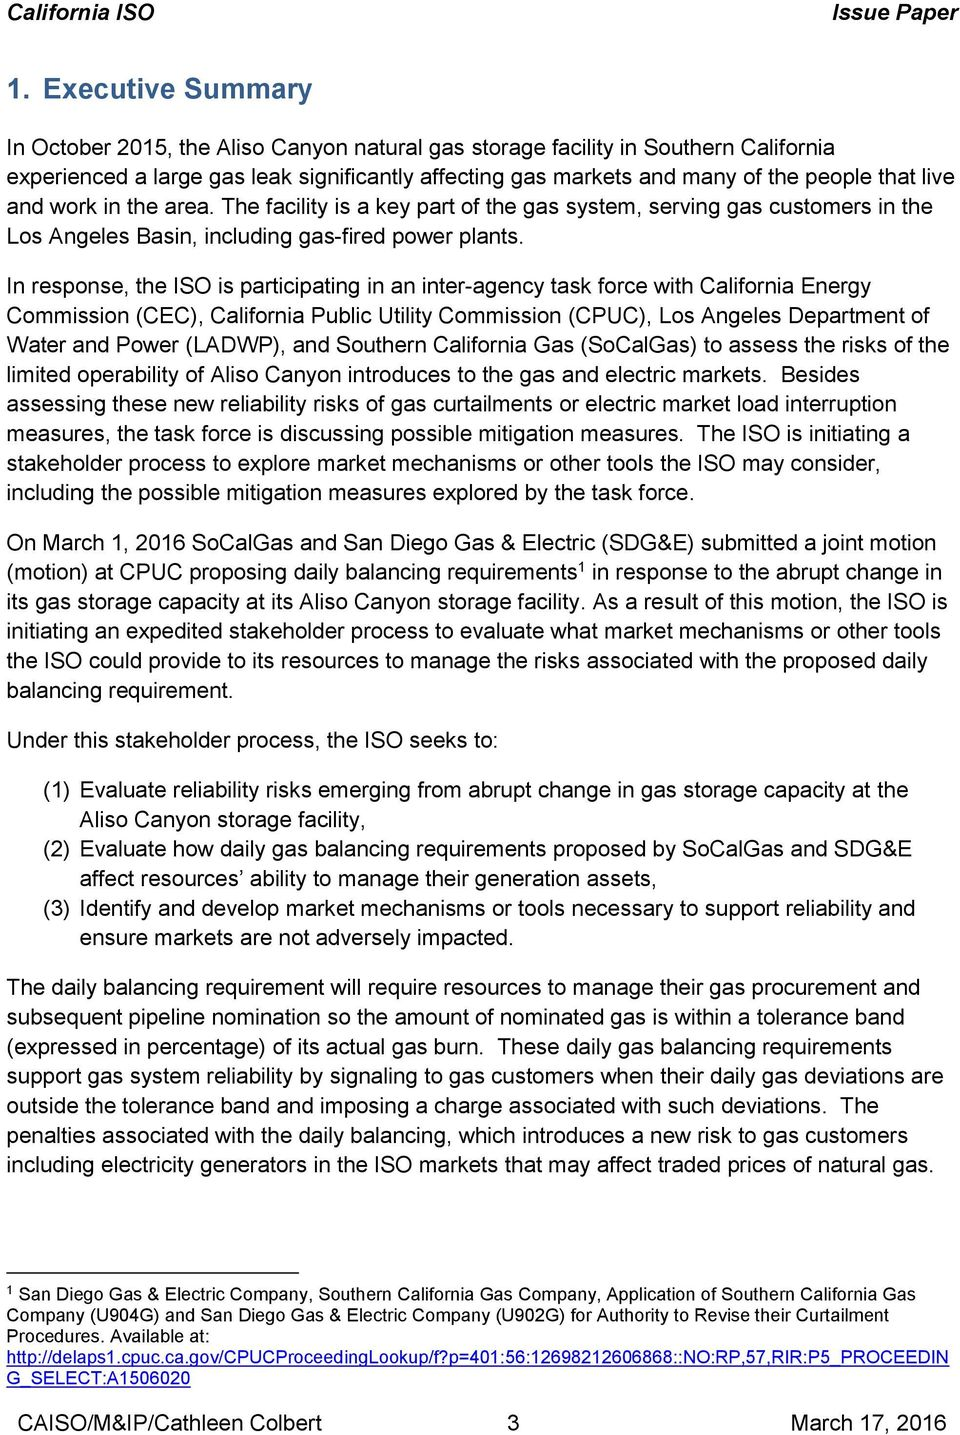 In response, the ISO is participating in an inter-agency task force with California Energy Commission (CEC), California Public Utility Commission (CPUC), Los Angeles Department of Water and Power